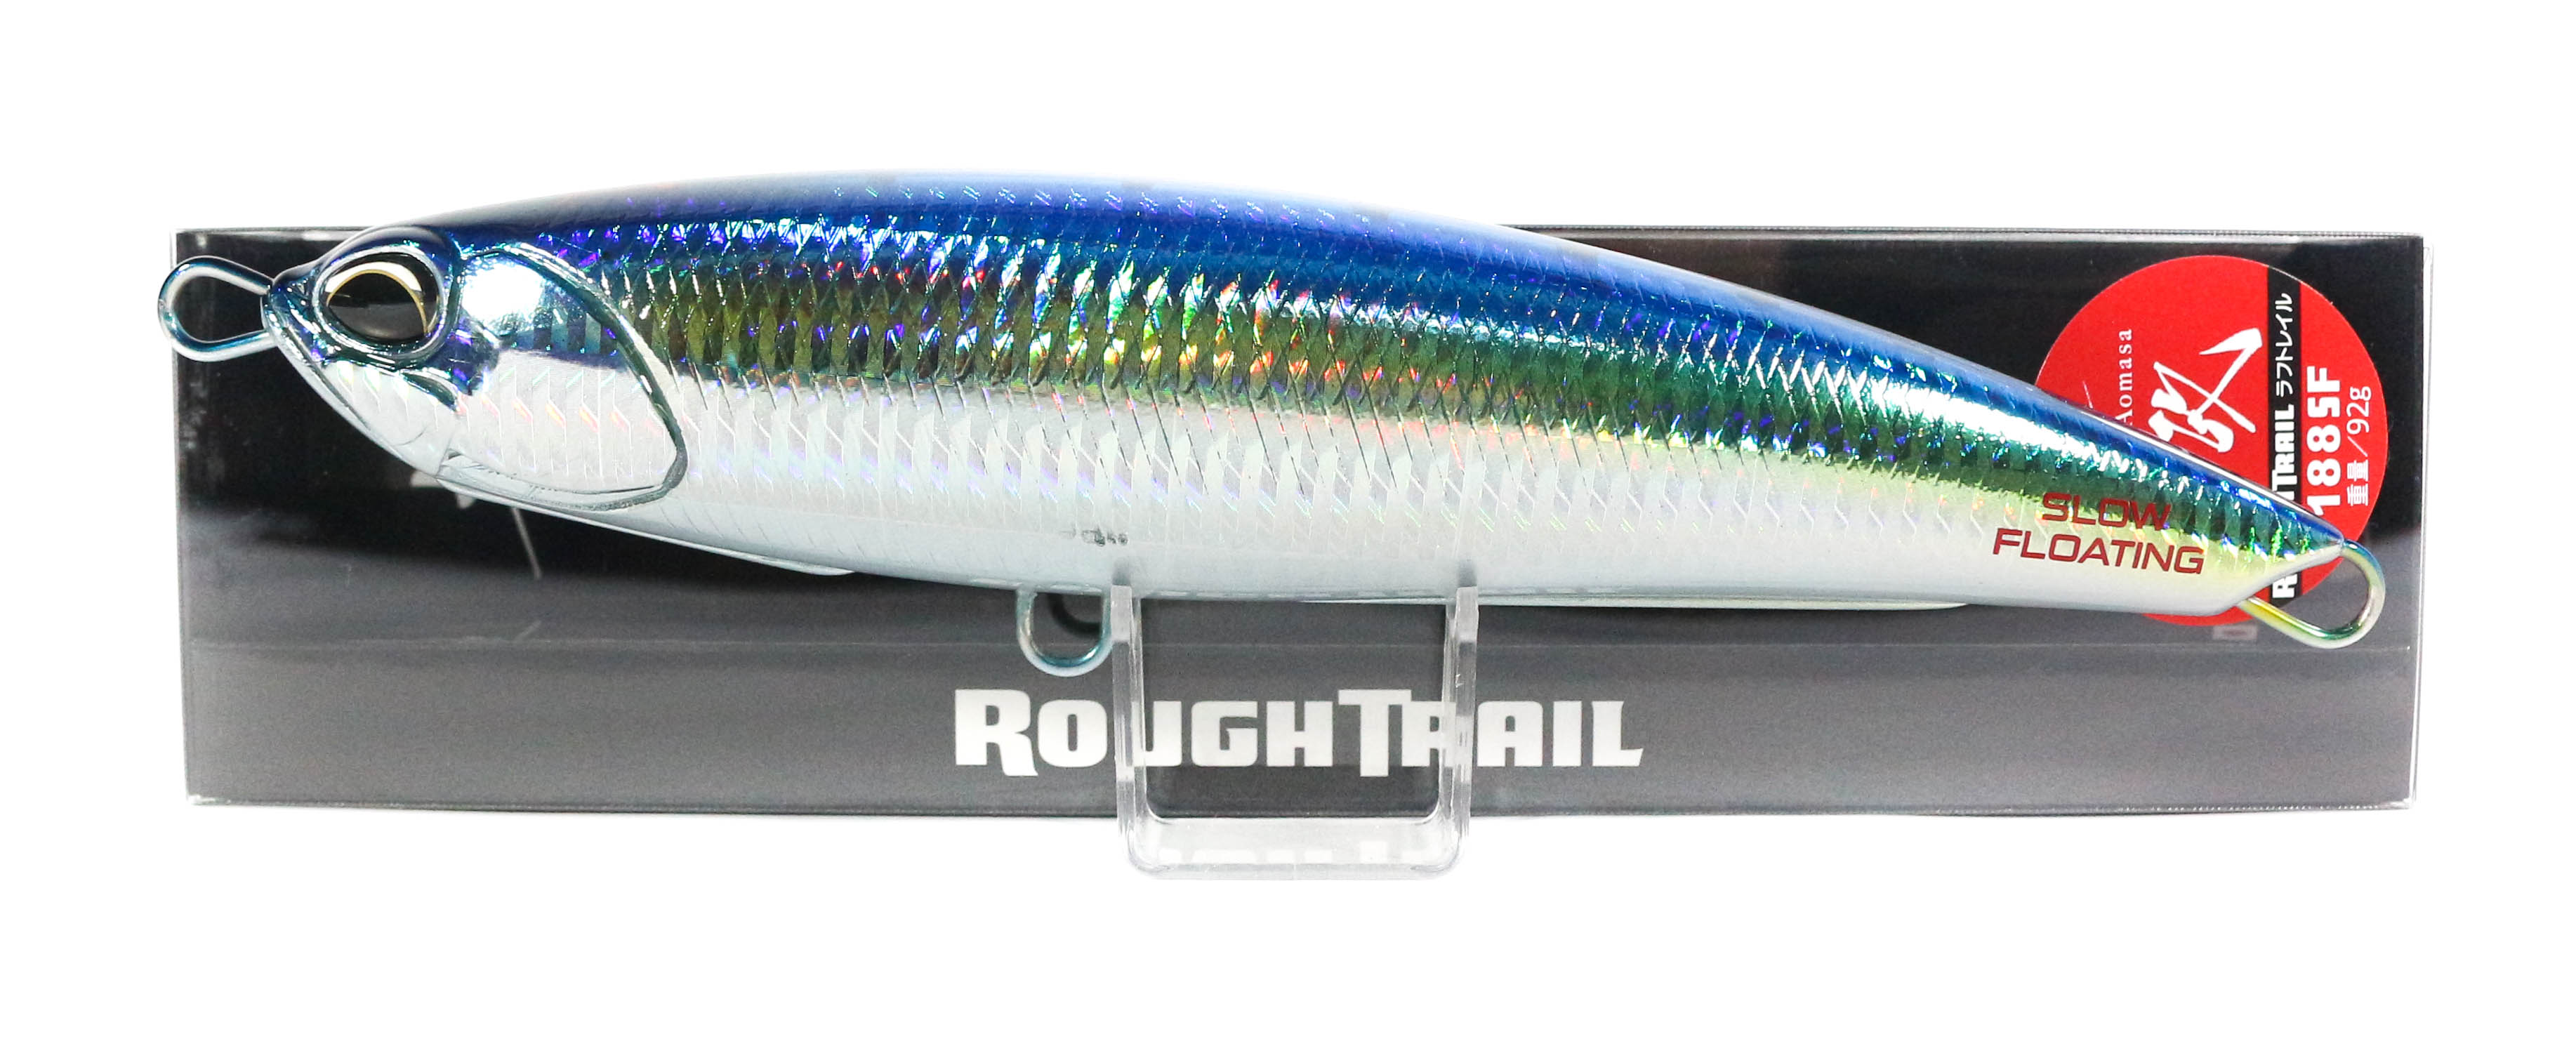 8778 Duo Rough Trail Hydra 175 30 grams Floating Lure CPA0384